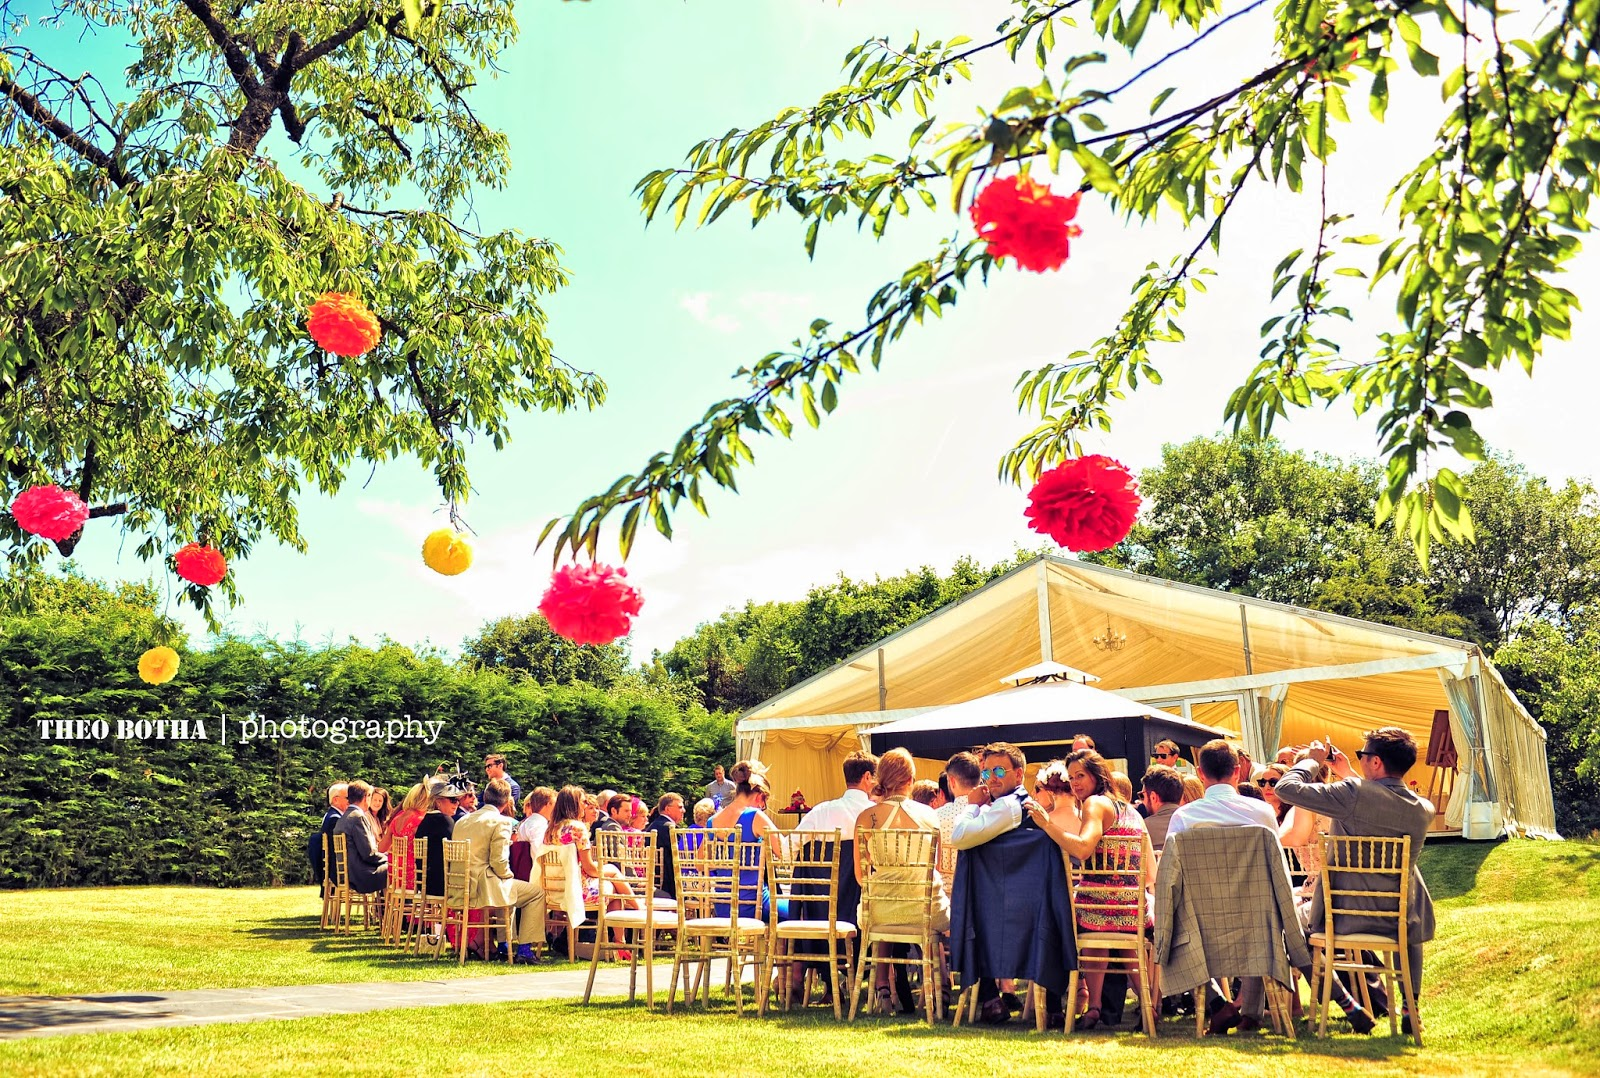 Saay A Stunning Wedding Ceremony And Reception At Sanctum On The Green In Cookham Sunday Topped Off With Hog Roast Charlie S Family Home